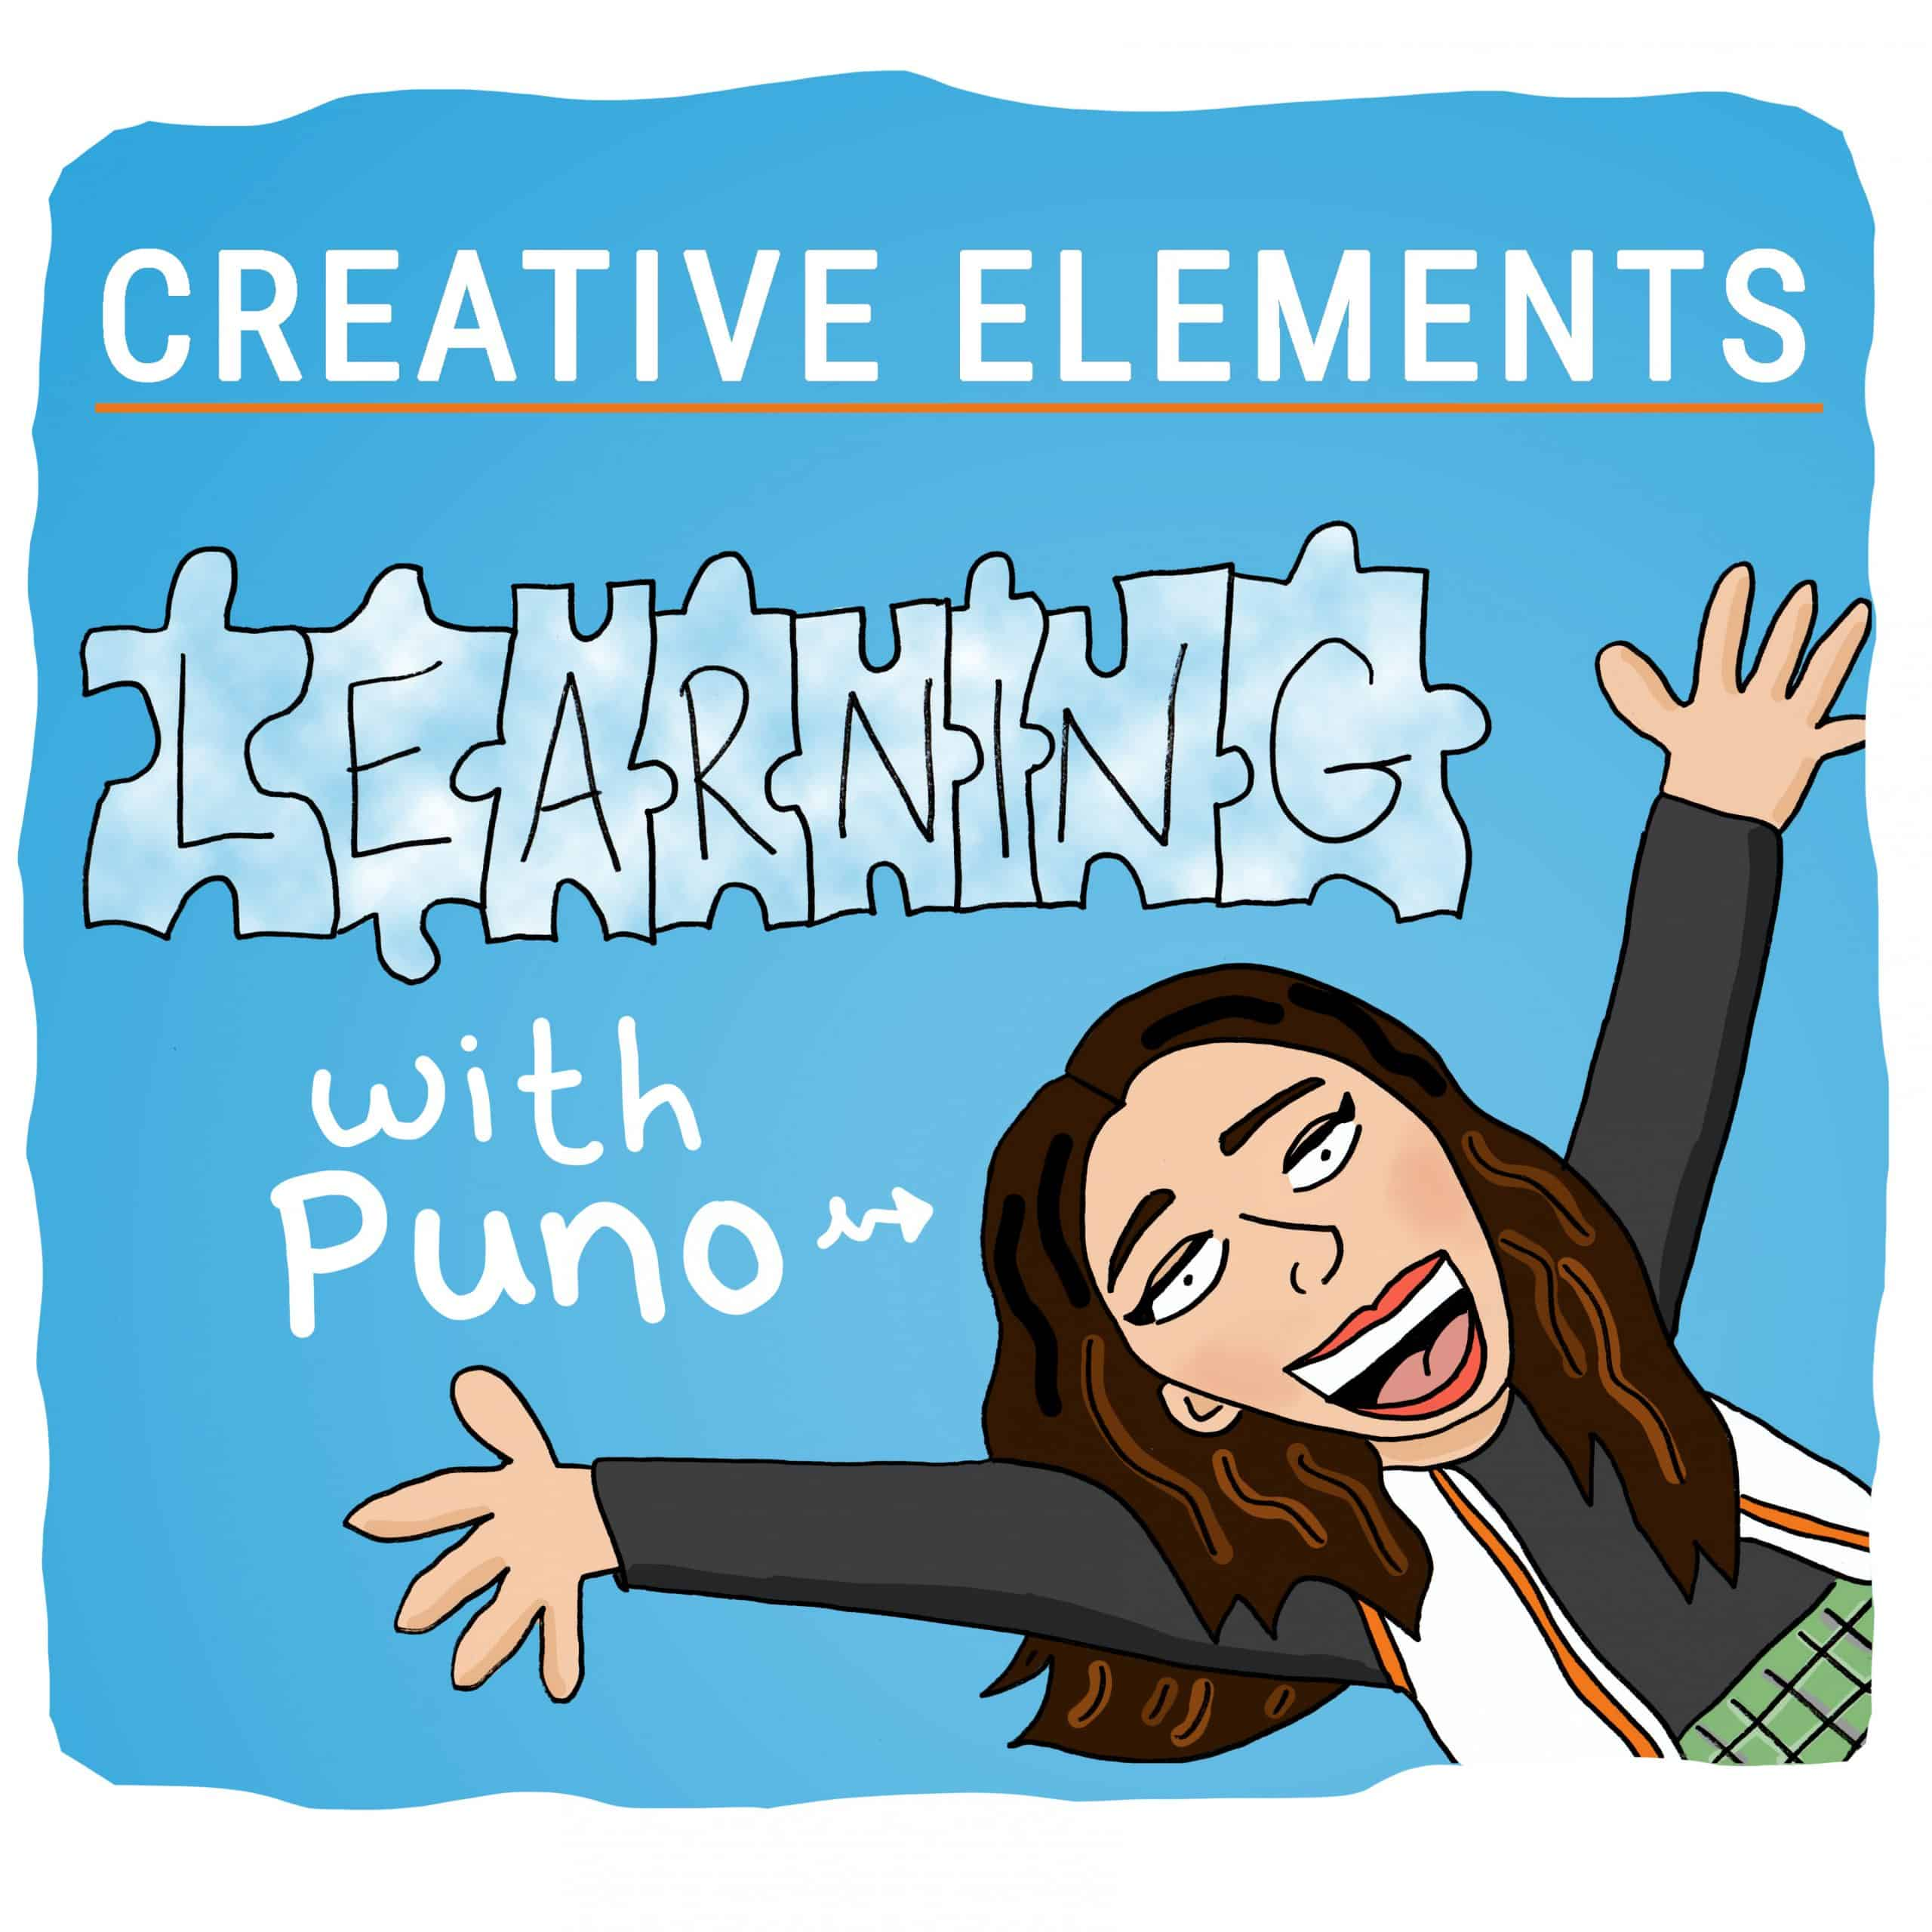 Puno on Creative Elements